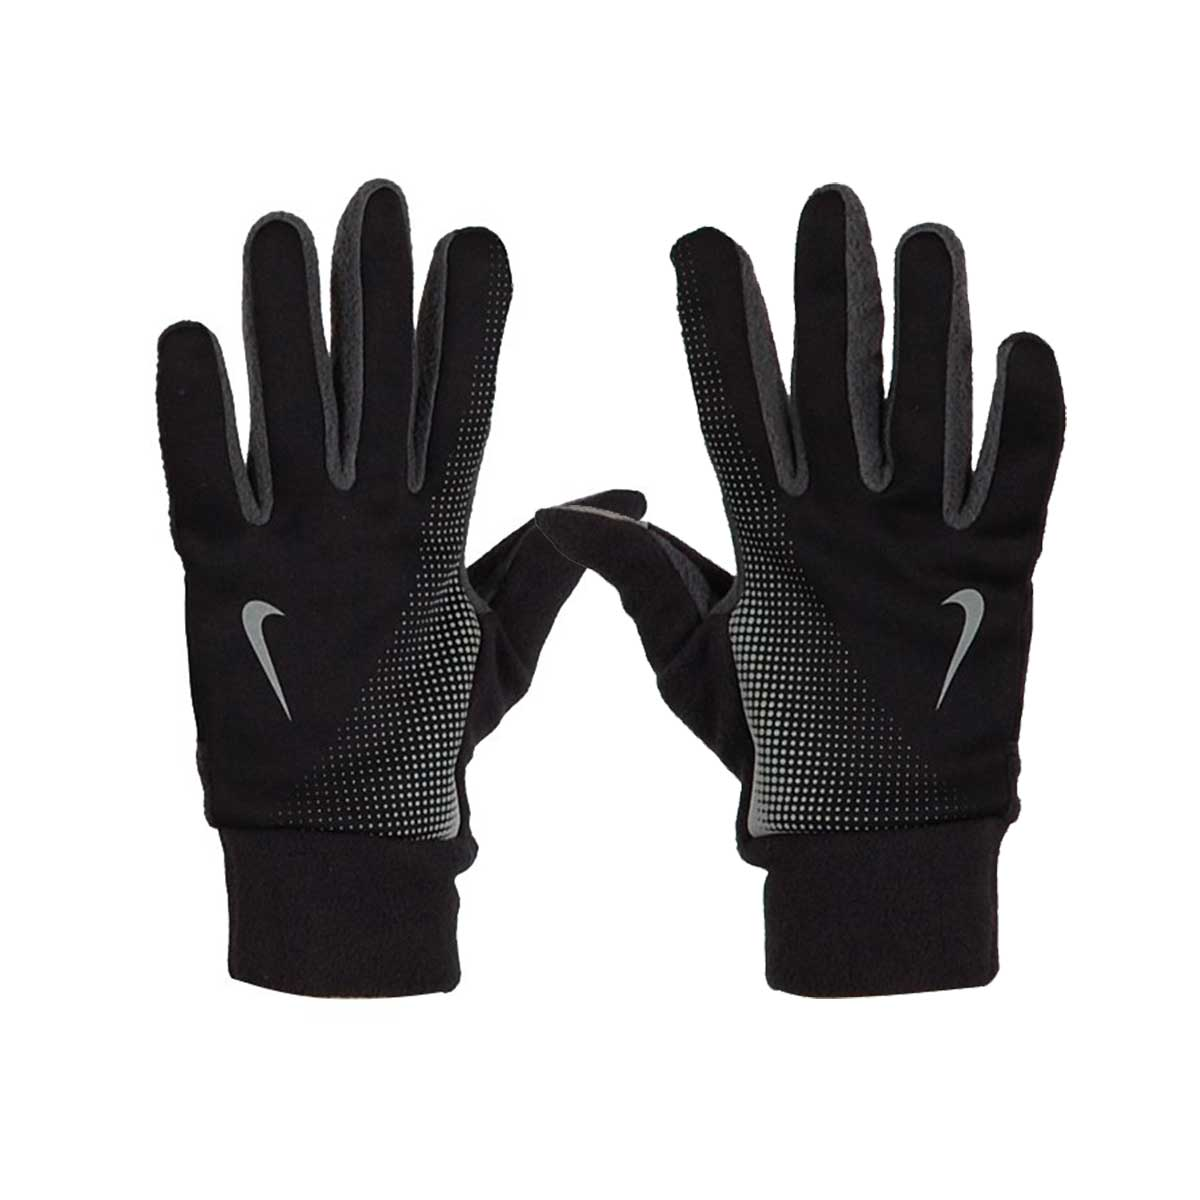 Nike Gloves Sale: Nike Gloves Online On Sale > OFF48% Discounts